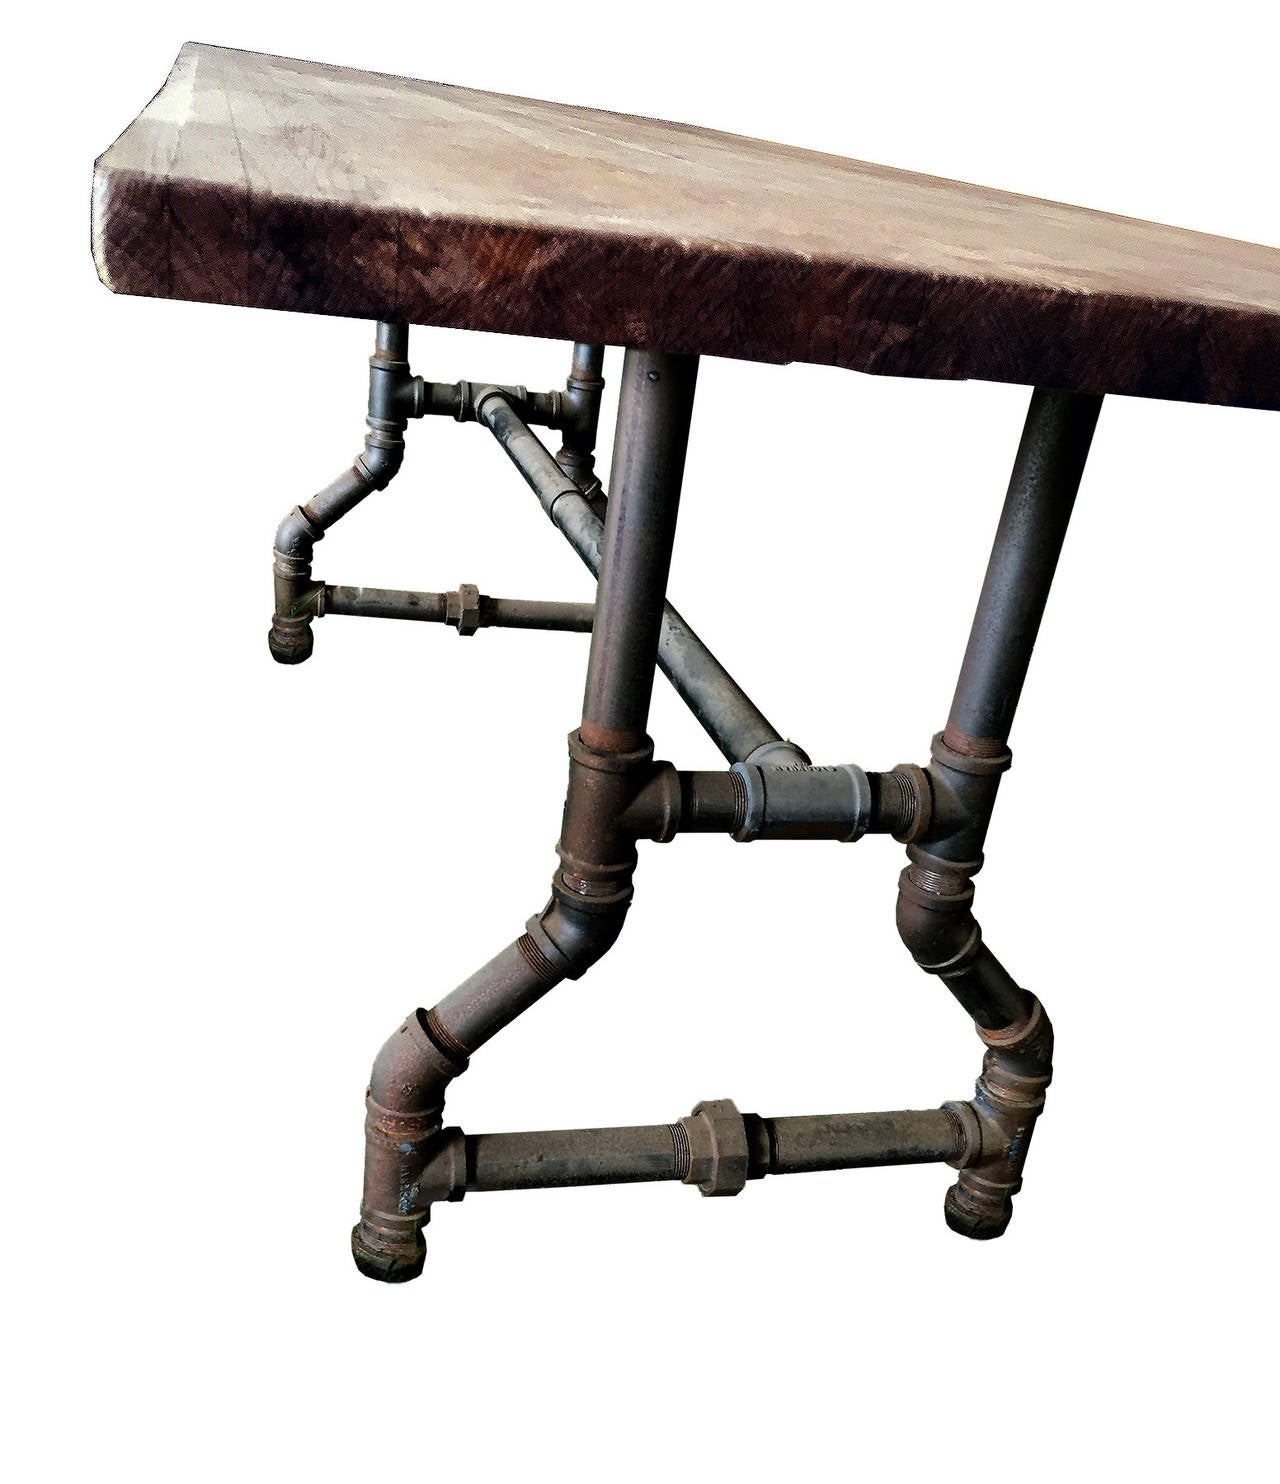 unusual rectangular industrial dining table for sale at find 5 unique wood dining tables interior decoration